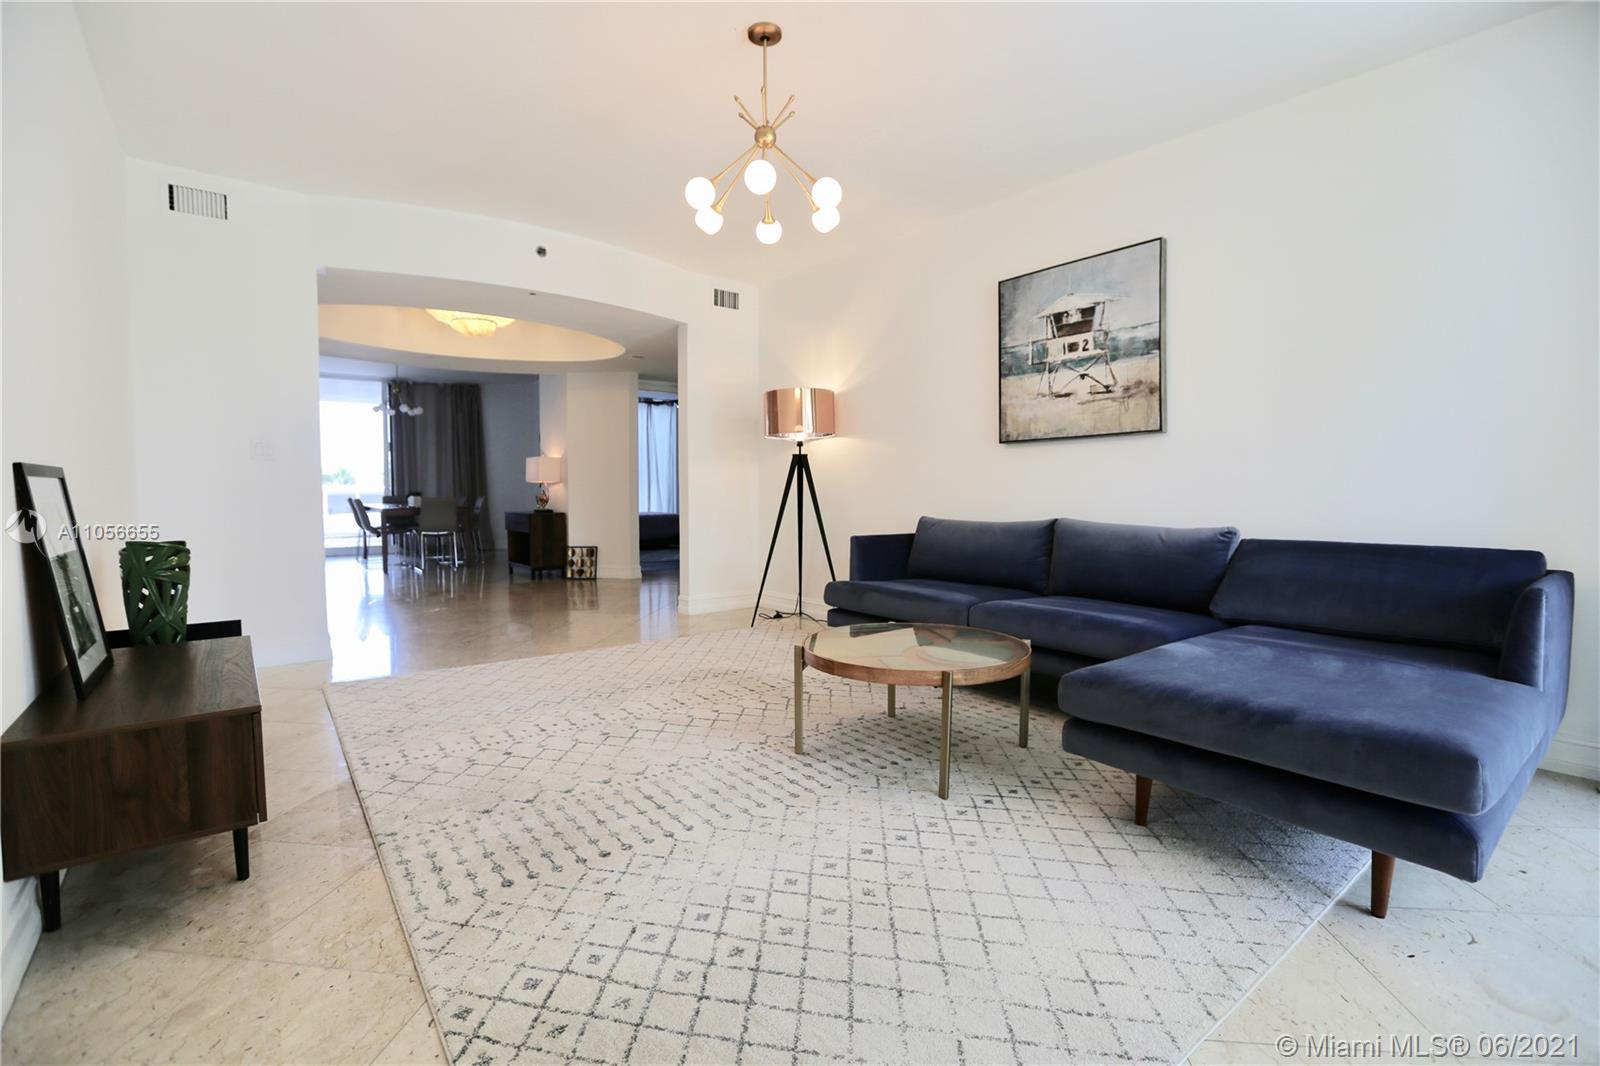 Huge private terrace almost 2000sq of your private outdoor space  Amazing opportunity to own privat